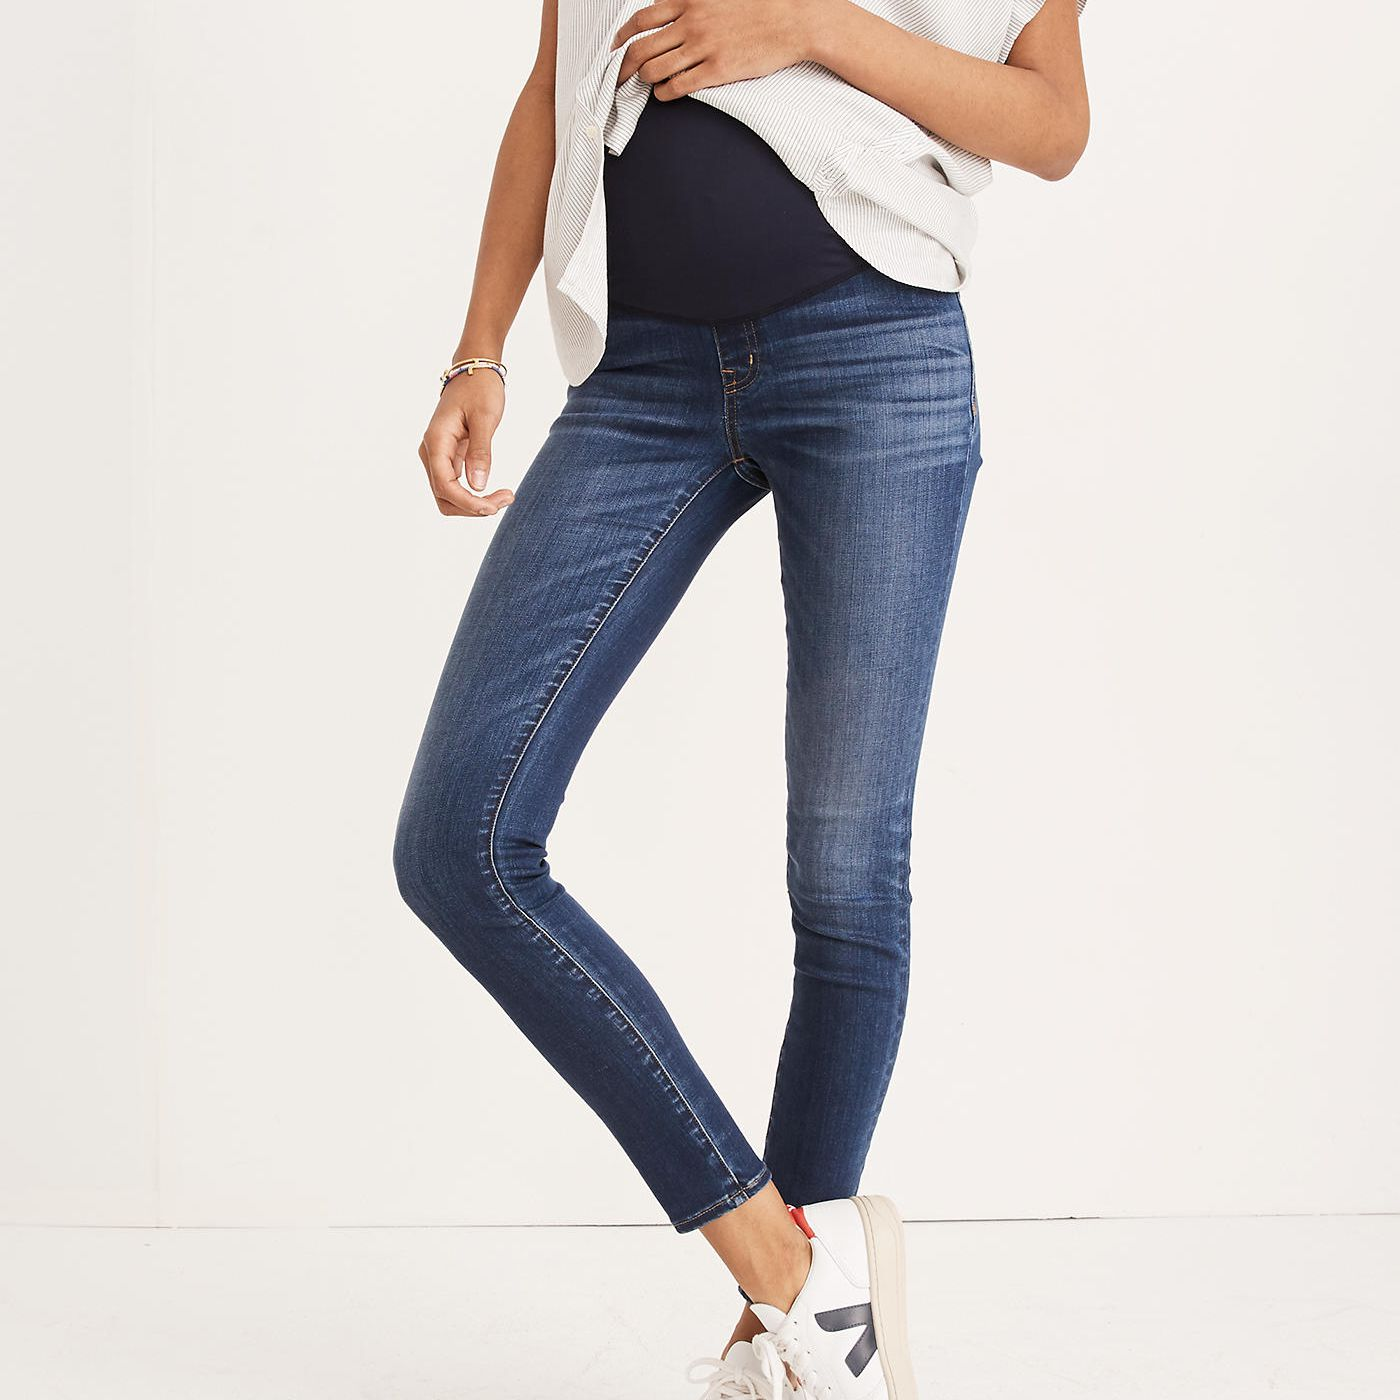 The 9 Best Maternity Jeans Of 2021